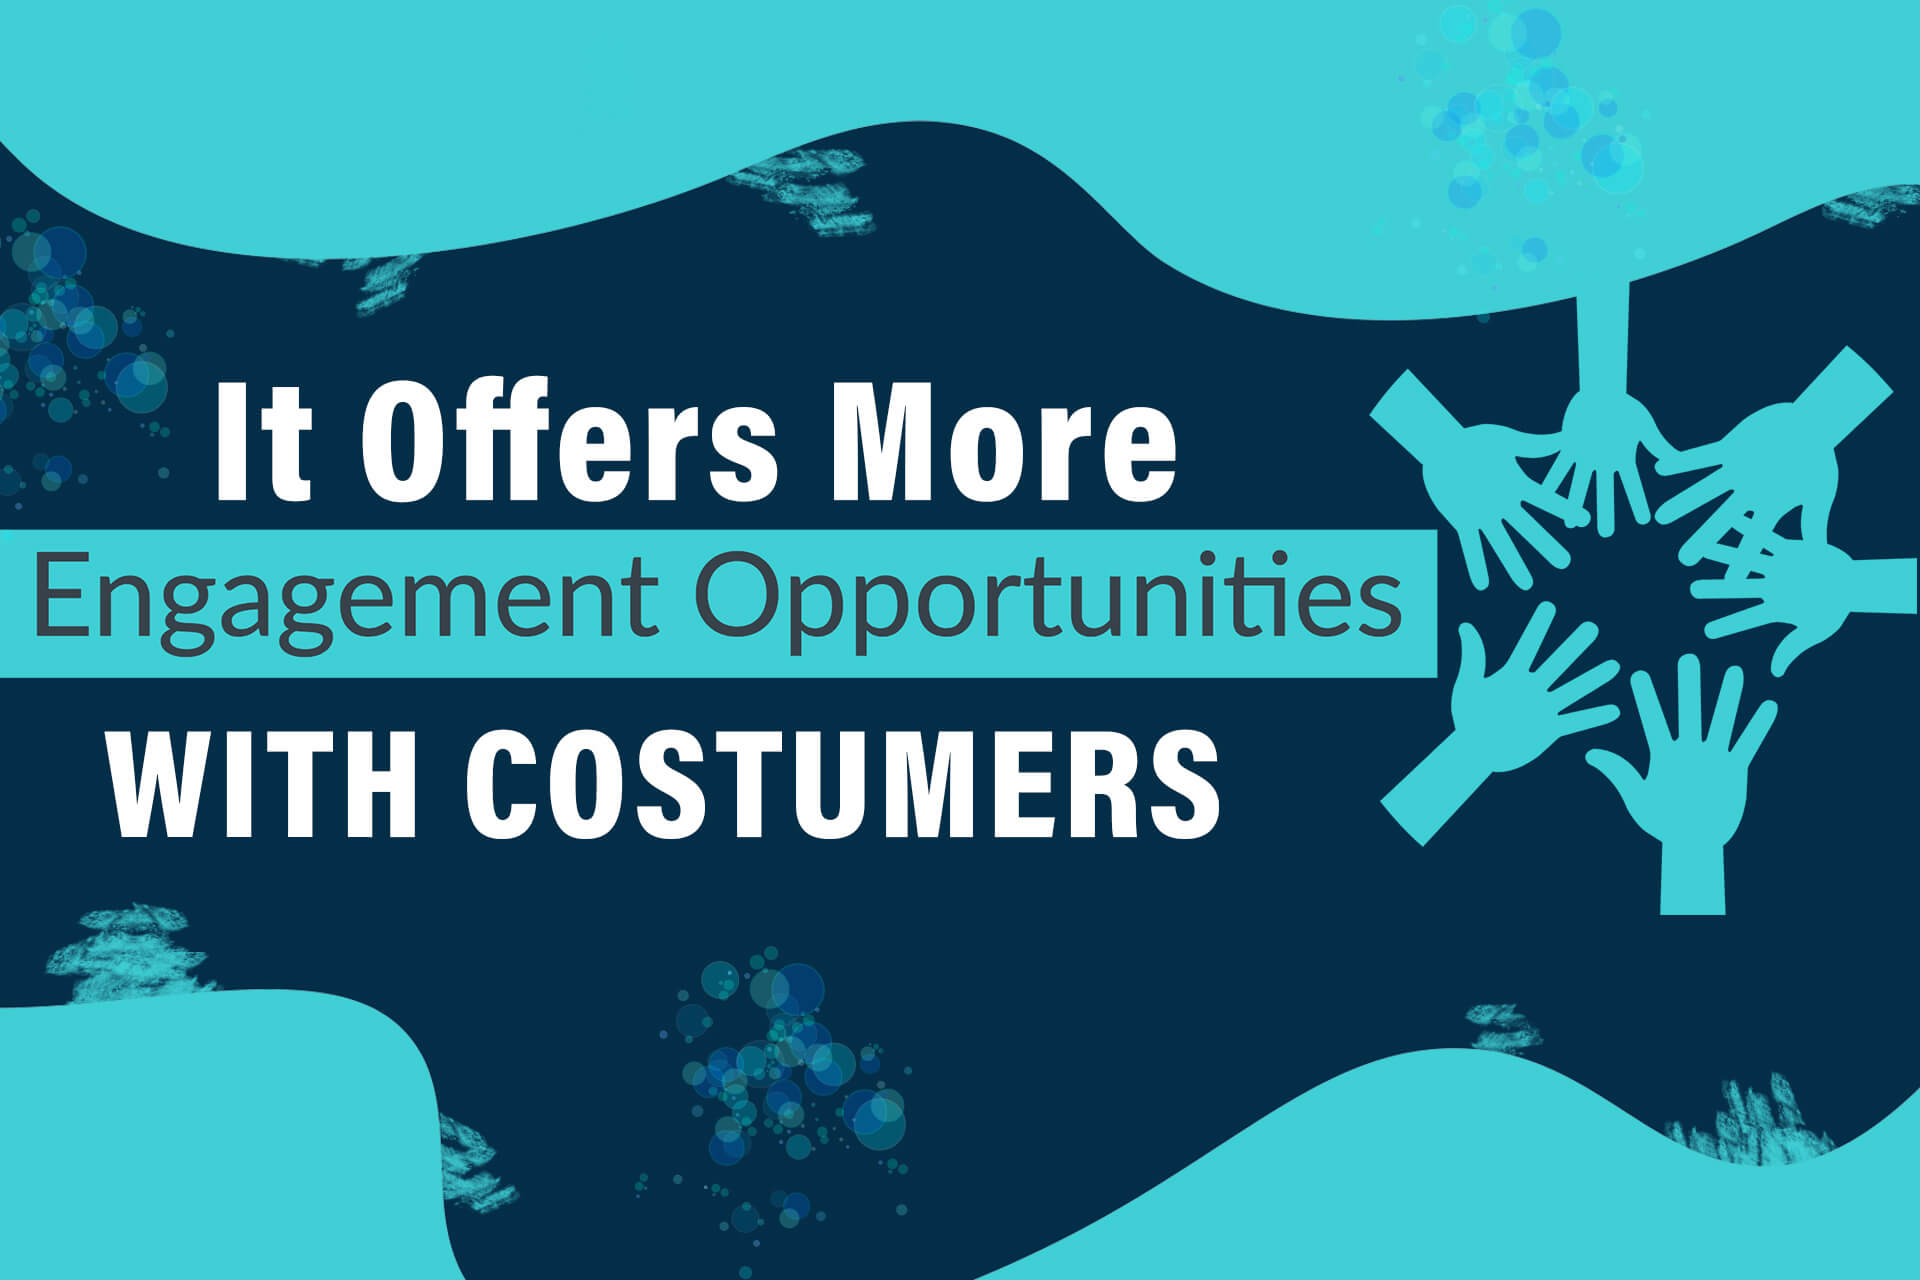 Social Media Marketing Offers More Engagement Opportunities With Customers